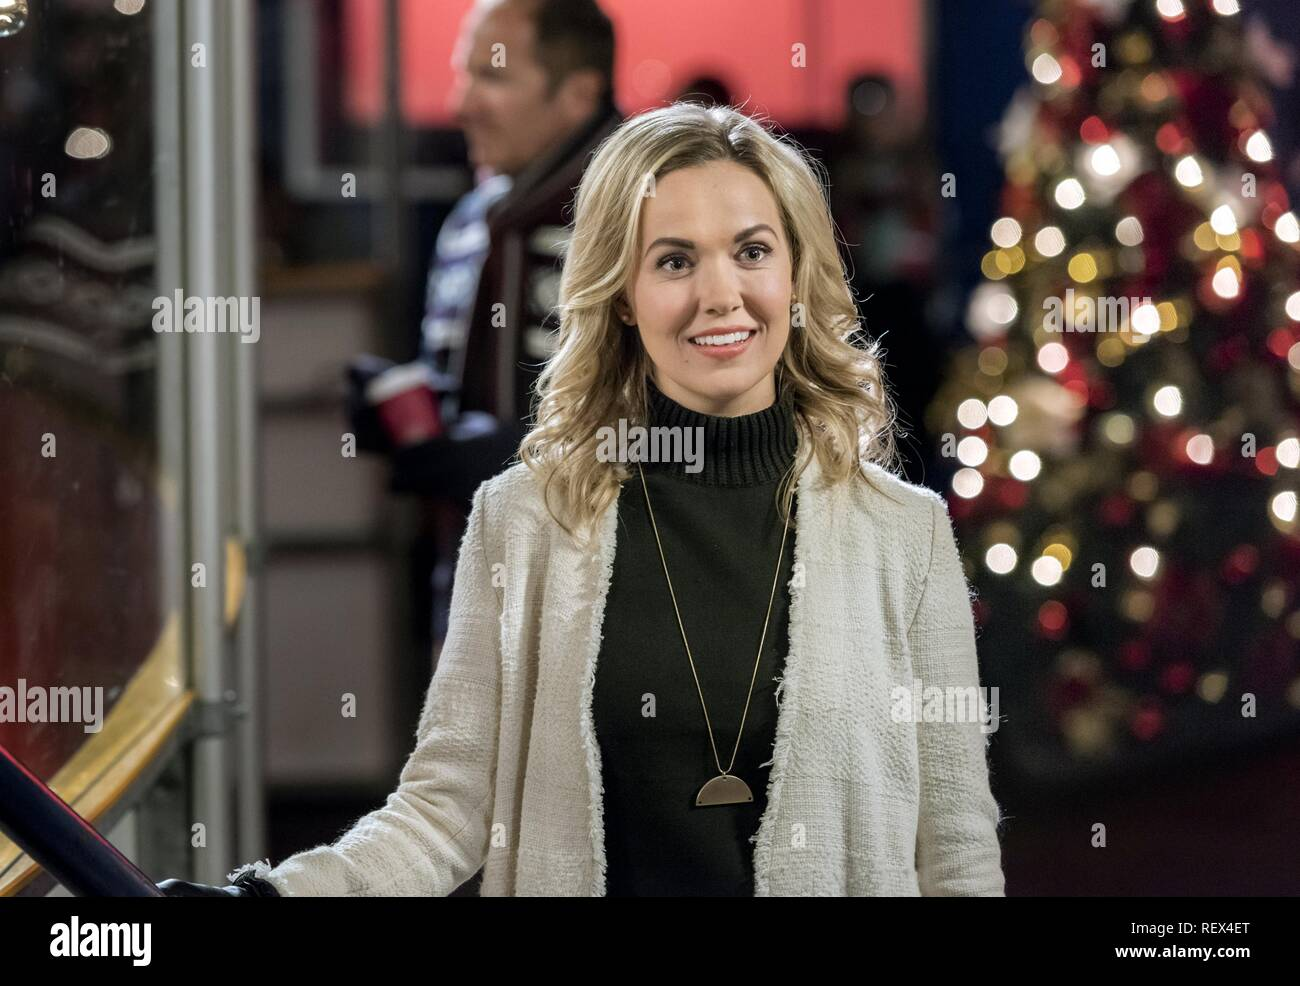 Hearts Of Christmas.Emilie Ullerup Hearts Of Christmas 2016 Stock Photo